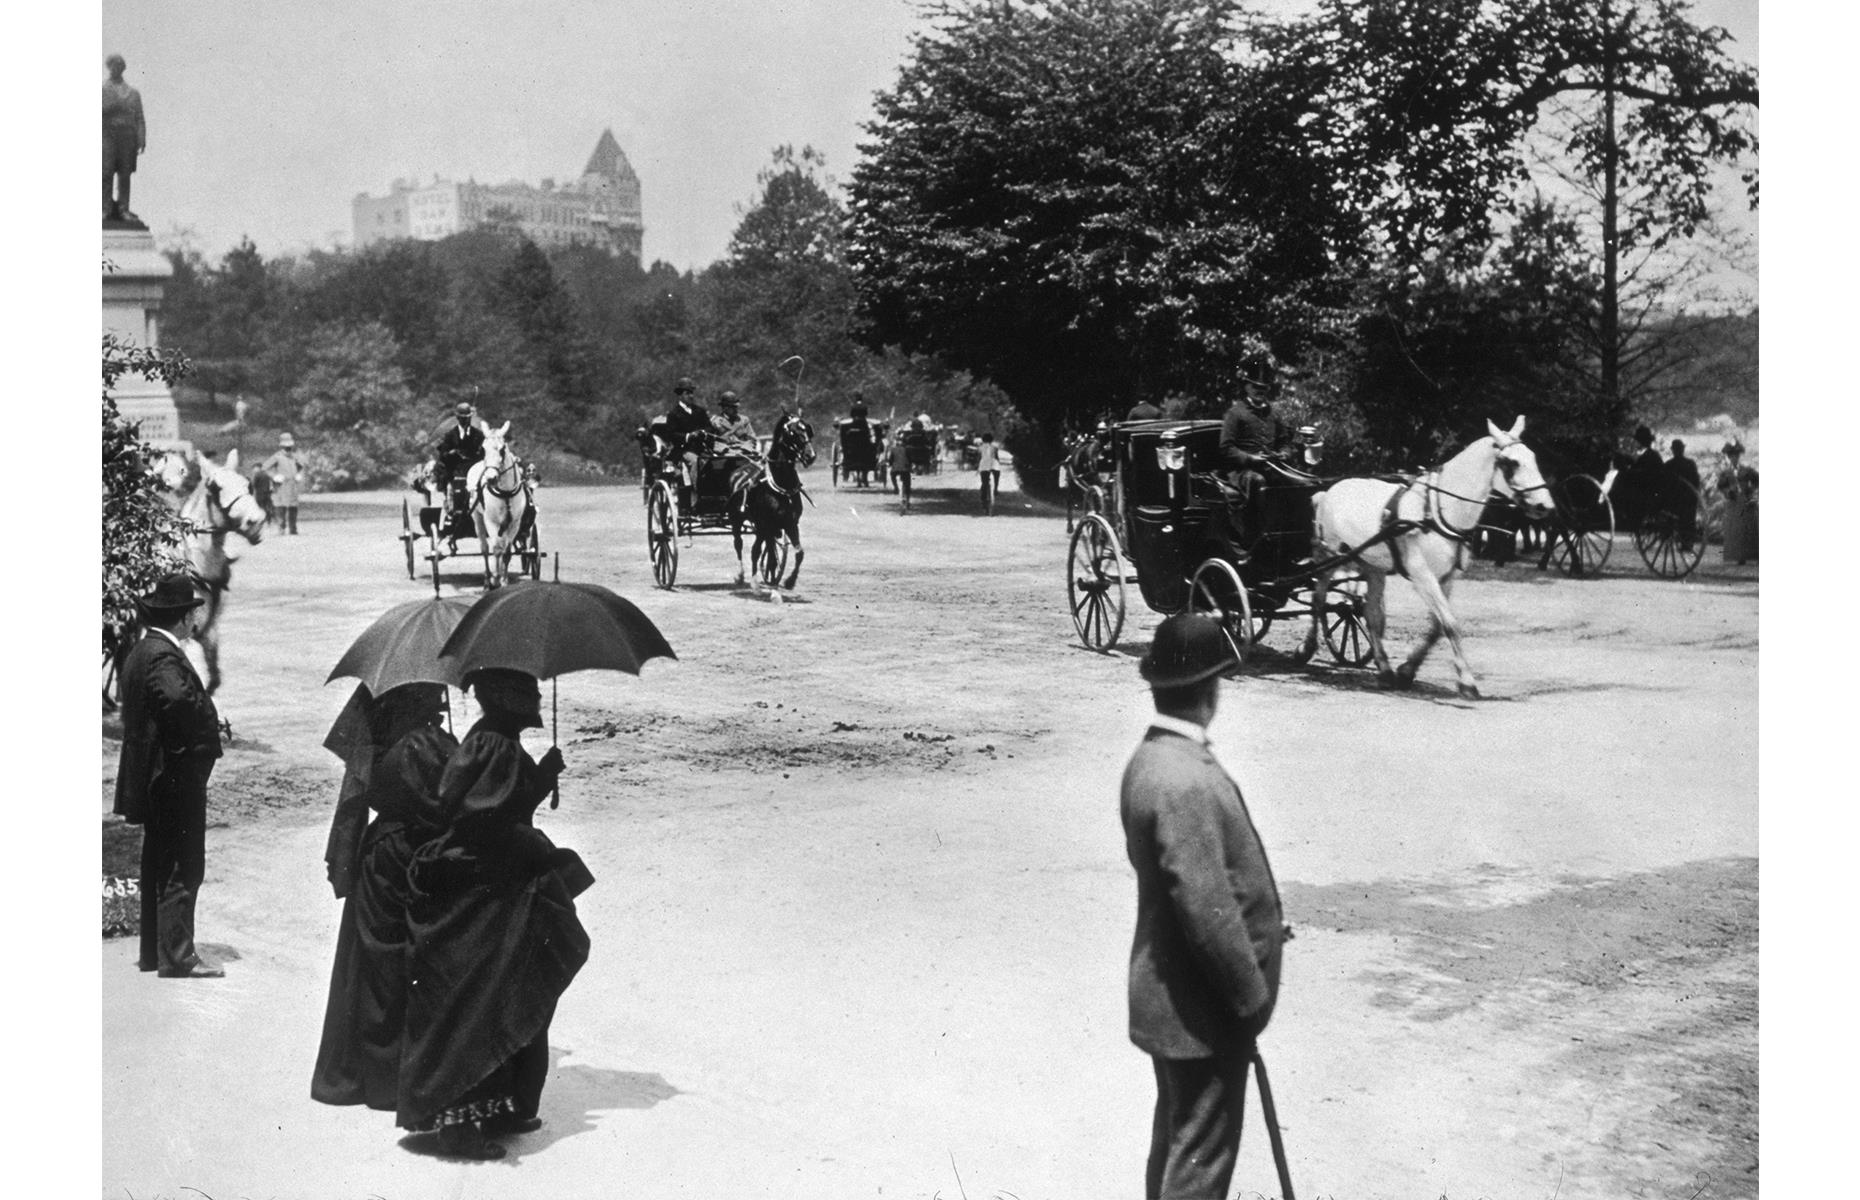 Slide 20 of 47: You can still take a carriage ride through Central Park, but back in the 19th century, the sight of tourists bundled into a horse-drawn coach was even more common. Here, in 1899, pedestrians watch on as gentle steeds clip-clop their way through the park. They're standing on the Mall, a pathway purposefully built to accommodate carriages.